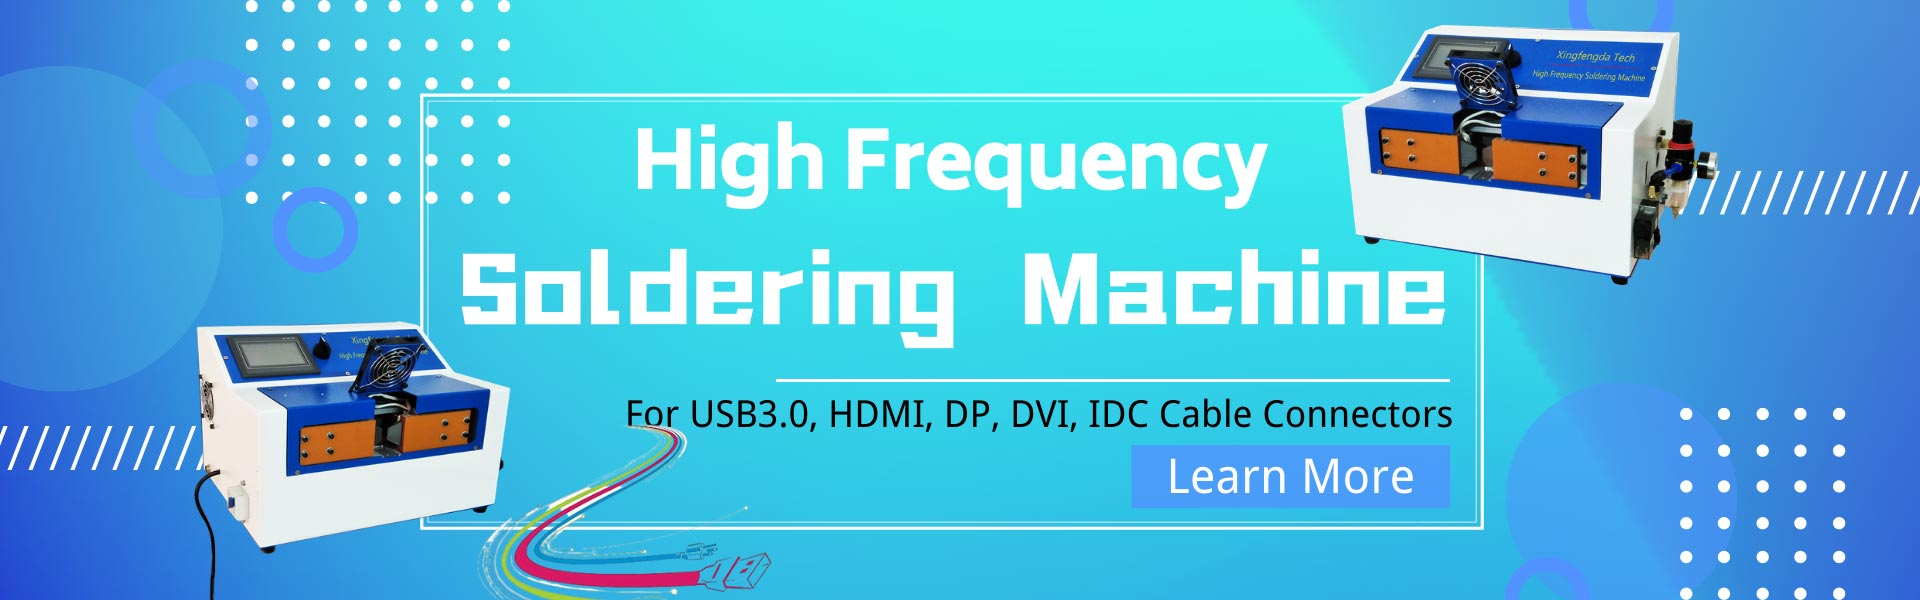 high-frequency-soldering-machine-for-usb3-0-hdmi-dp-dvi-idc-cables-connectors